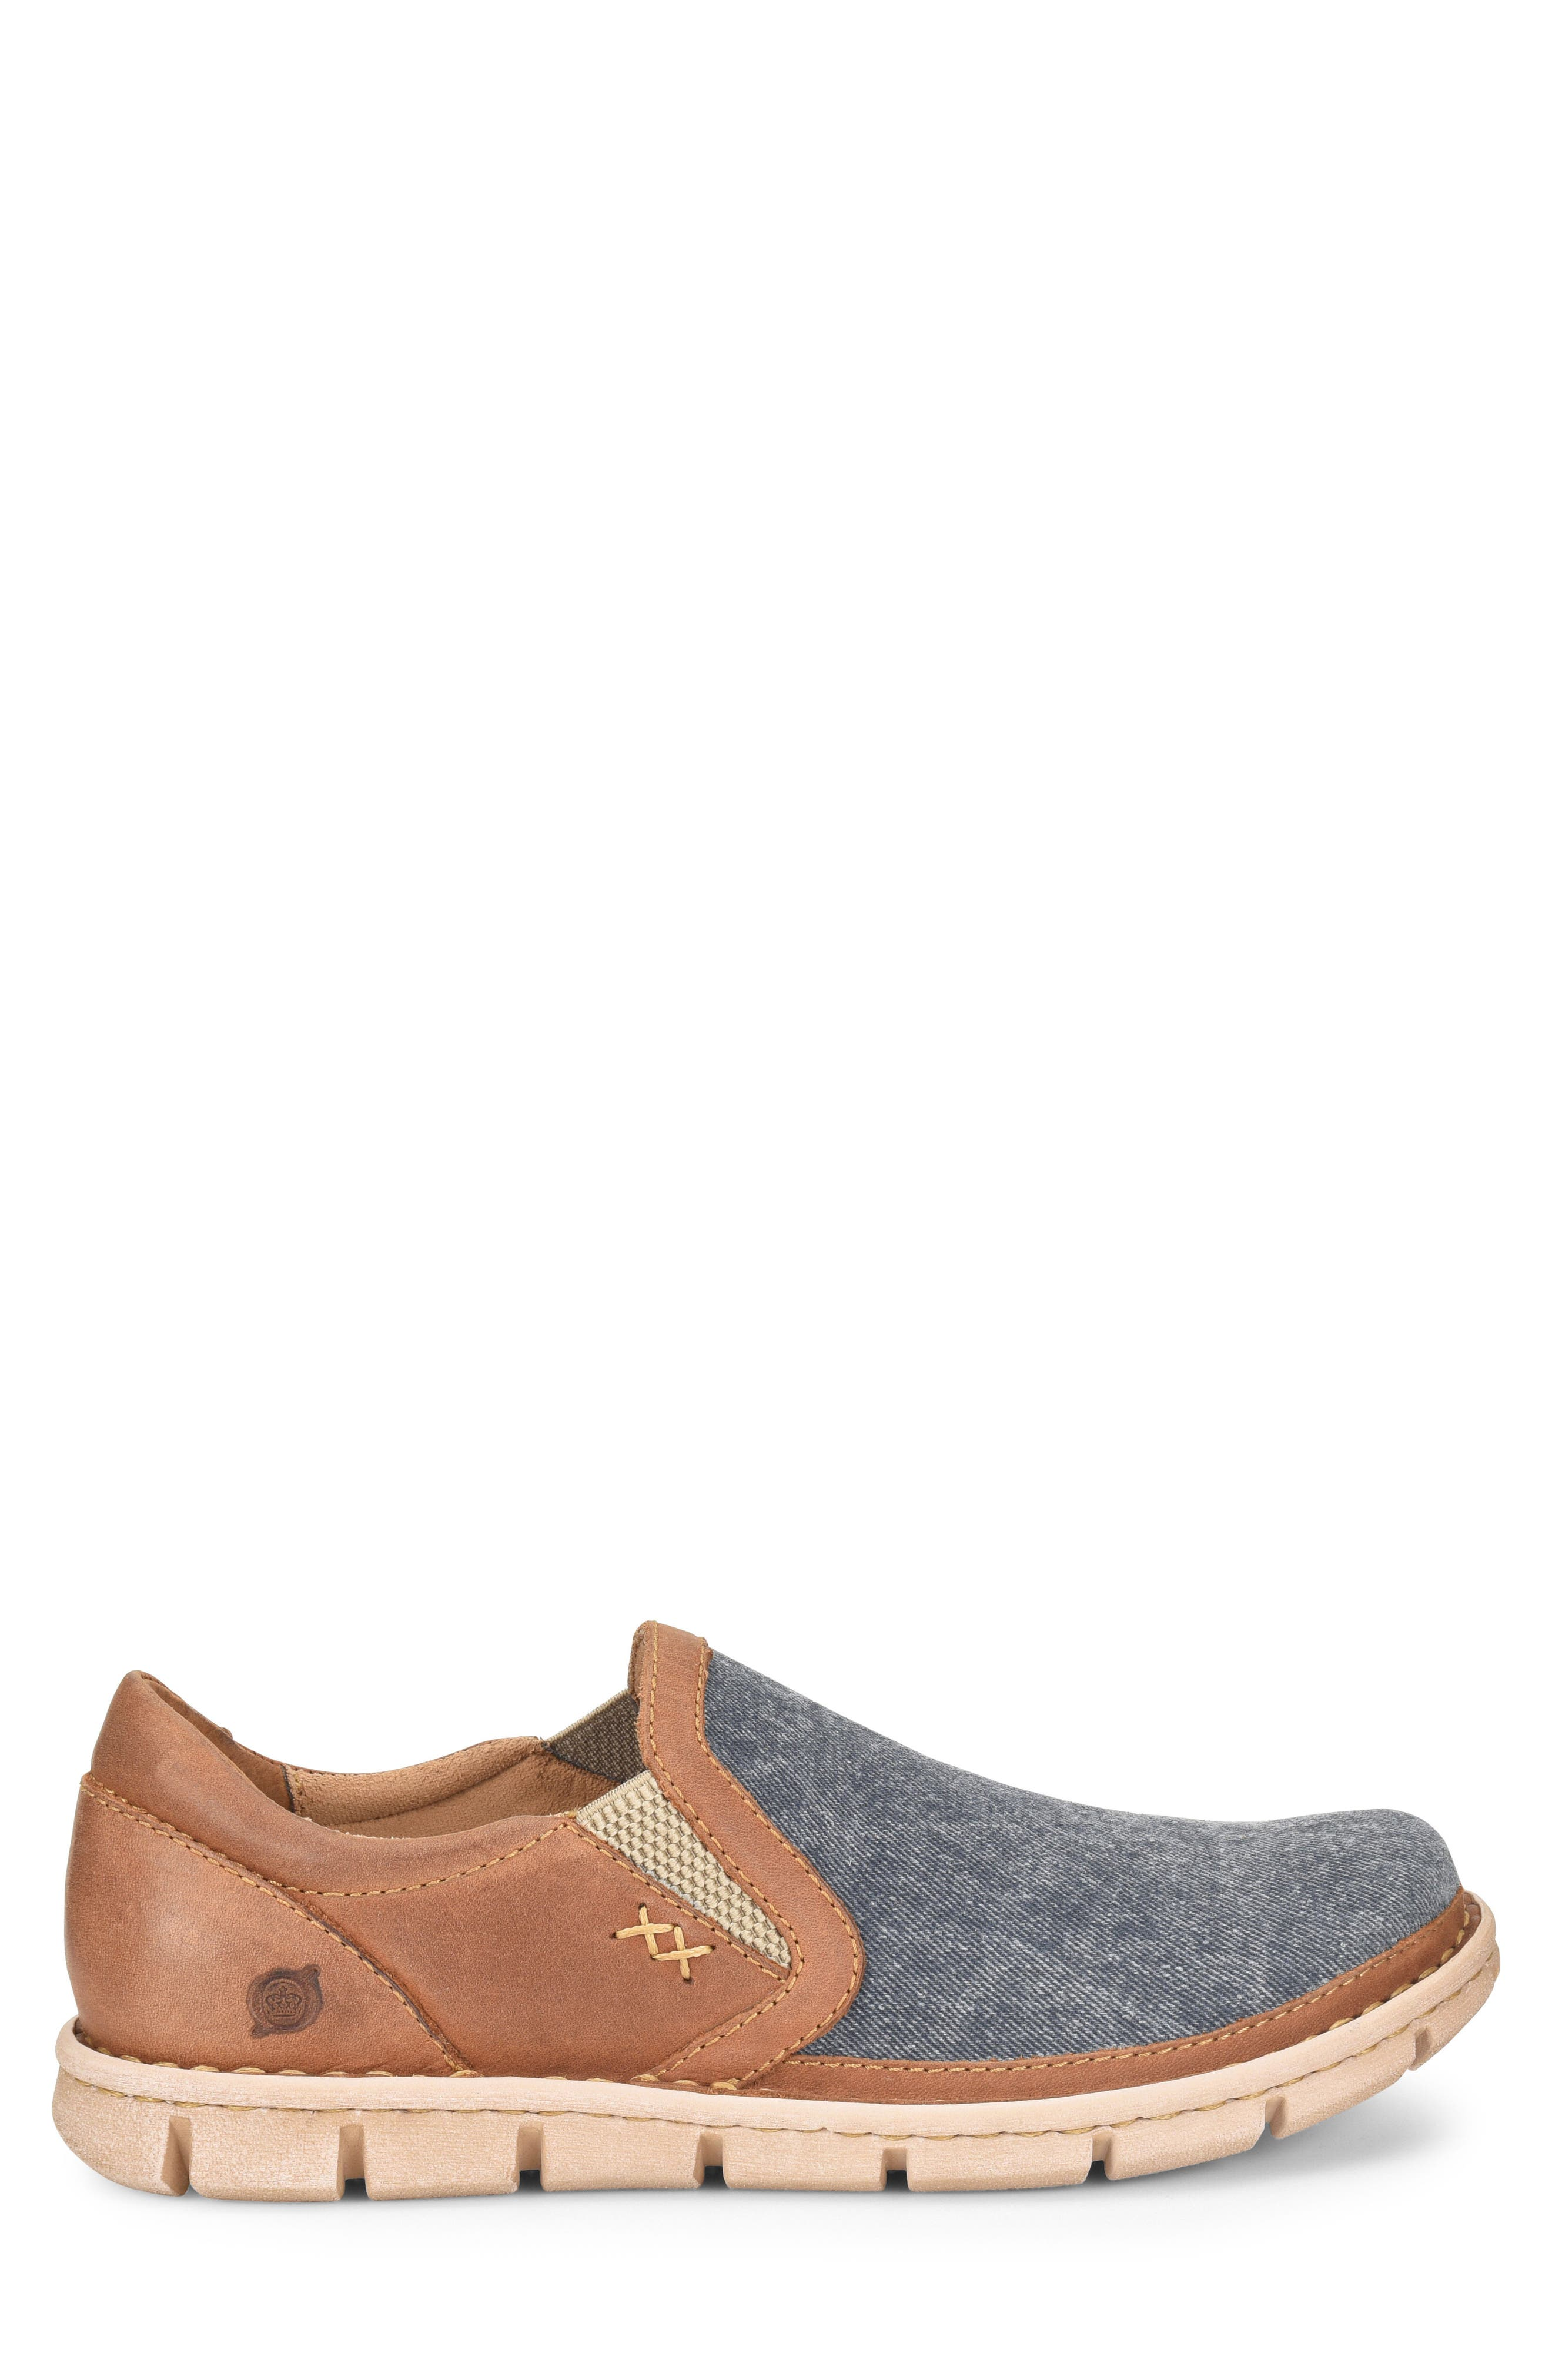 'Sawyer' Leather Slip-On,                             Alternate thumbnail 3, color,                             Navy/ Light Brown Canvas